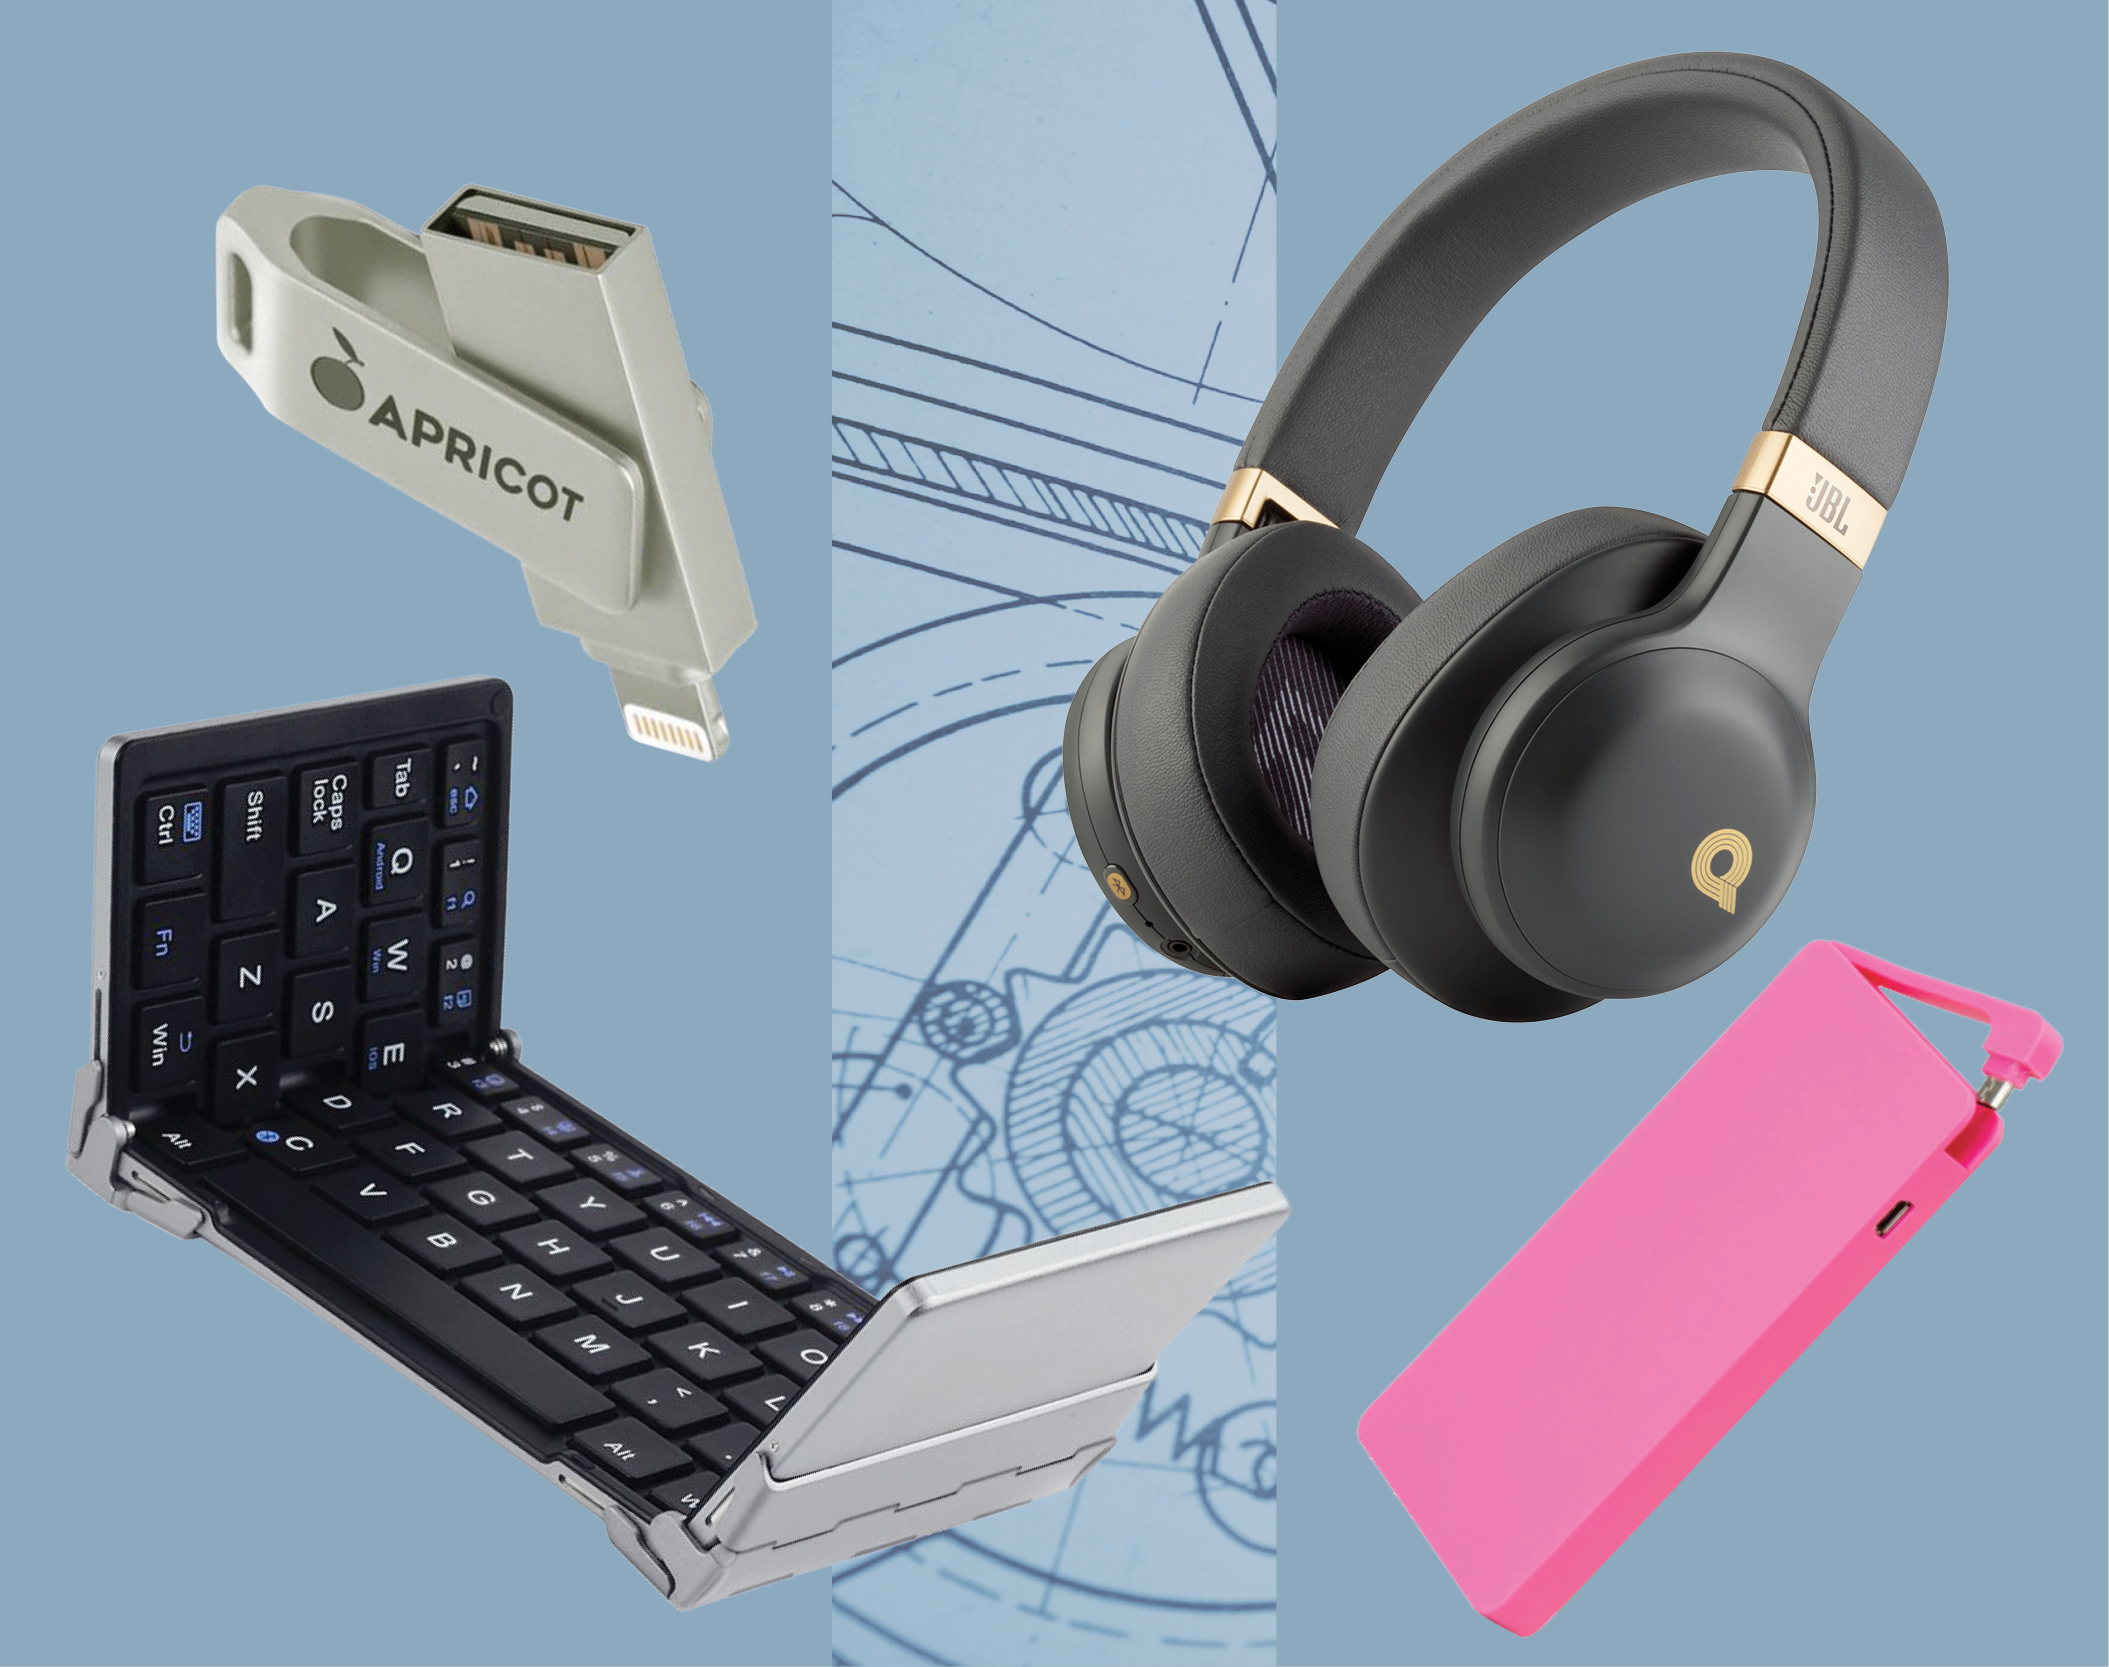 featured-image-gadgets-batch1